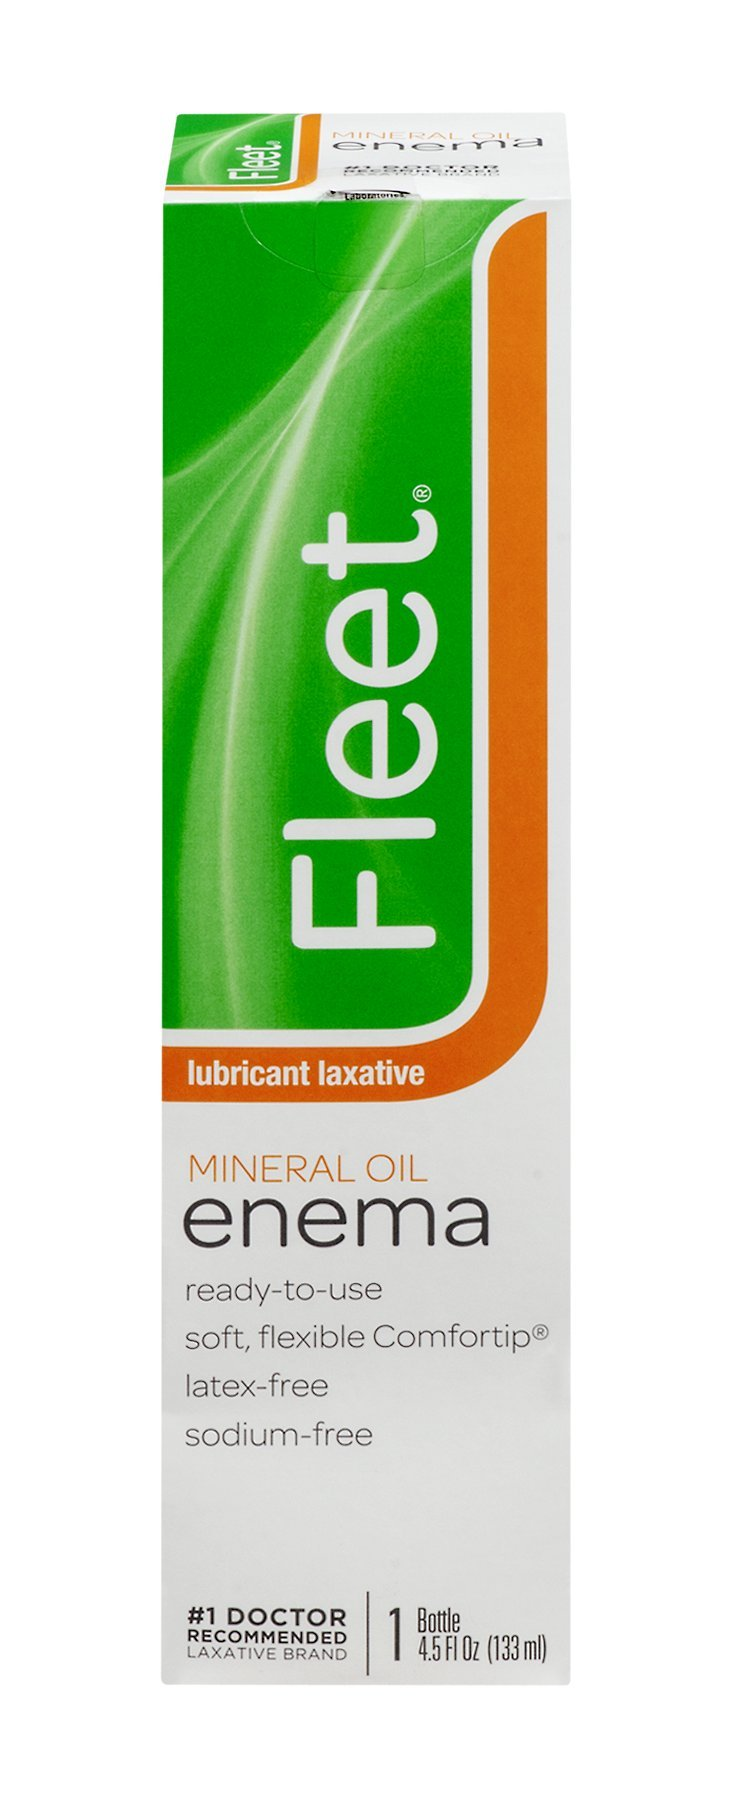 Fleet Lubricant Laxative Mineral Oil Enema | 4.5 oz | Pack of 48 | Fast Constipation Relief in Minutes by Fleet